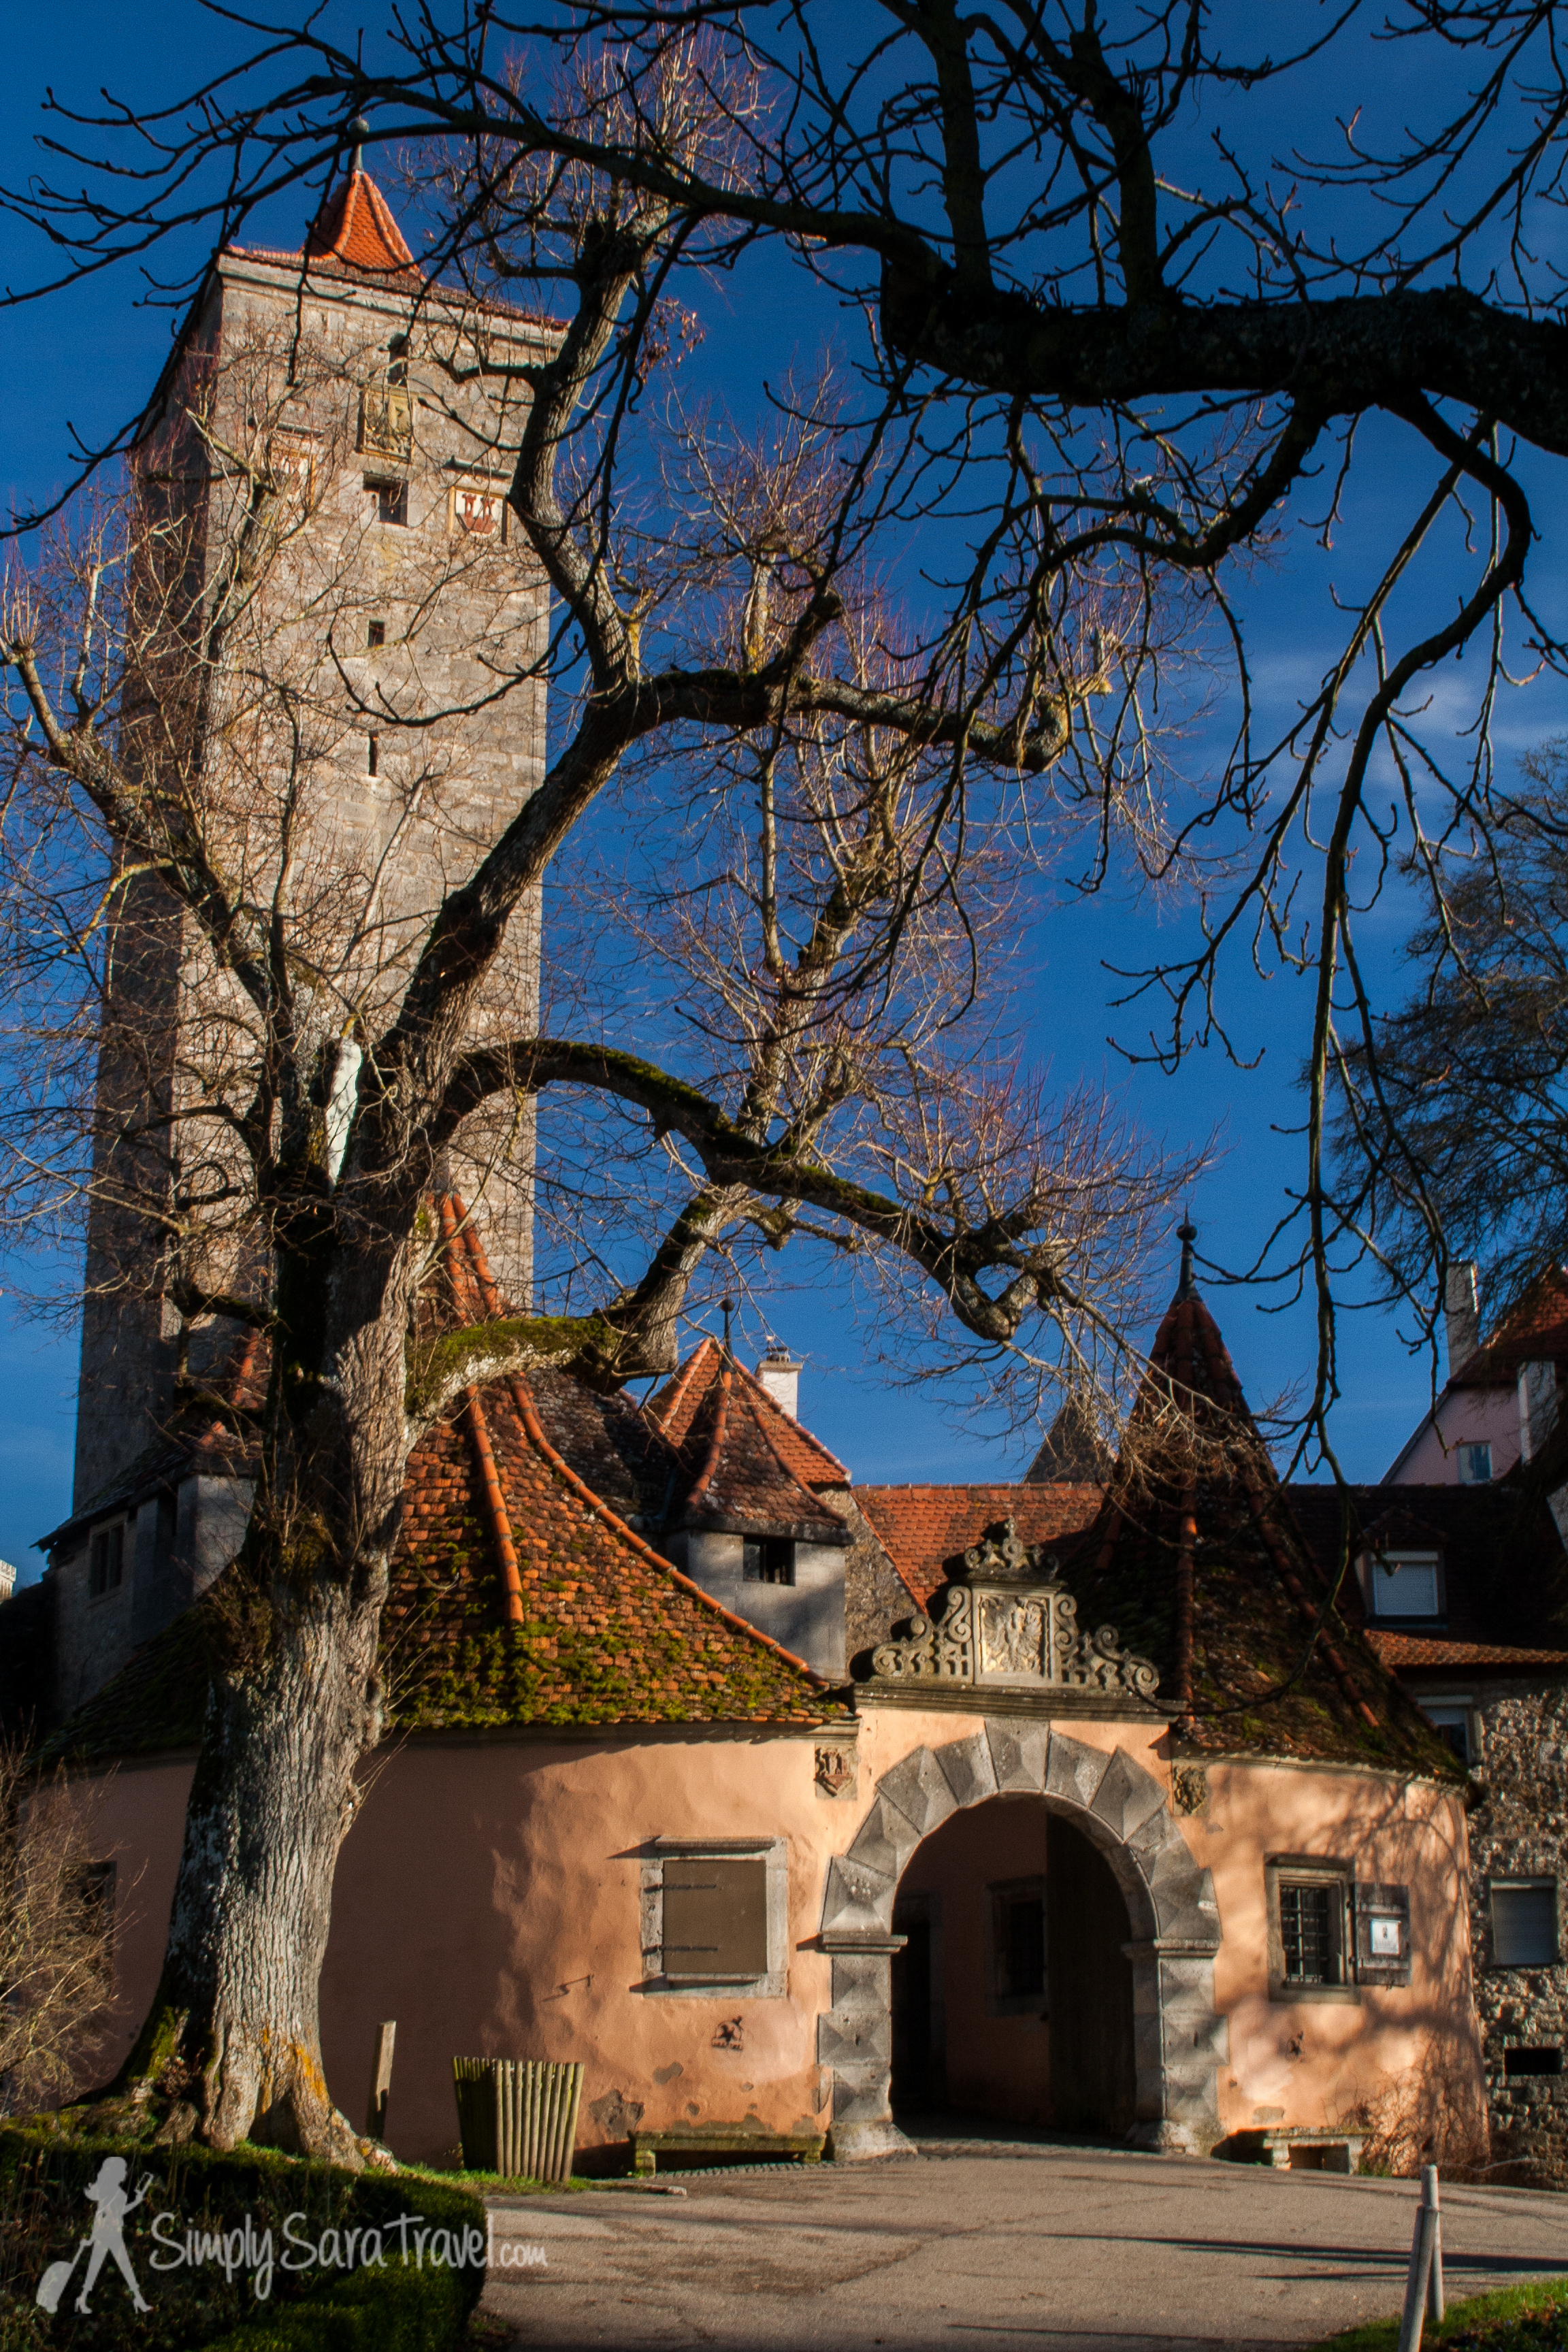 I fell in love with the medieval town of Rothenburgob der Tauber. (December 2013)